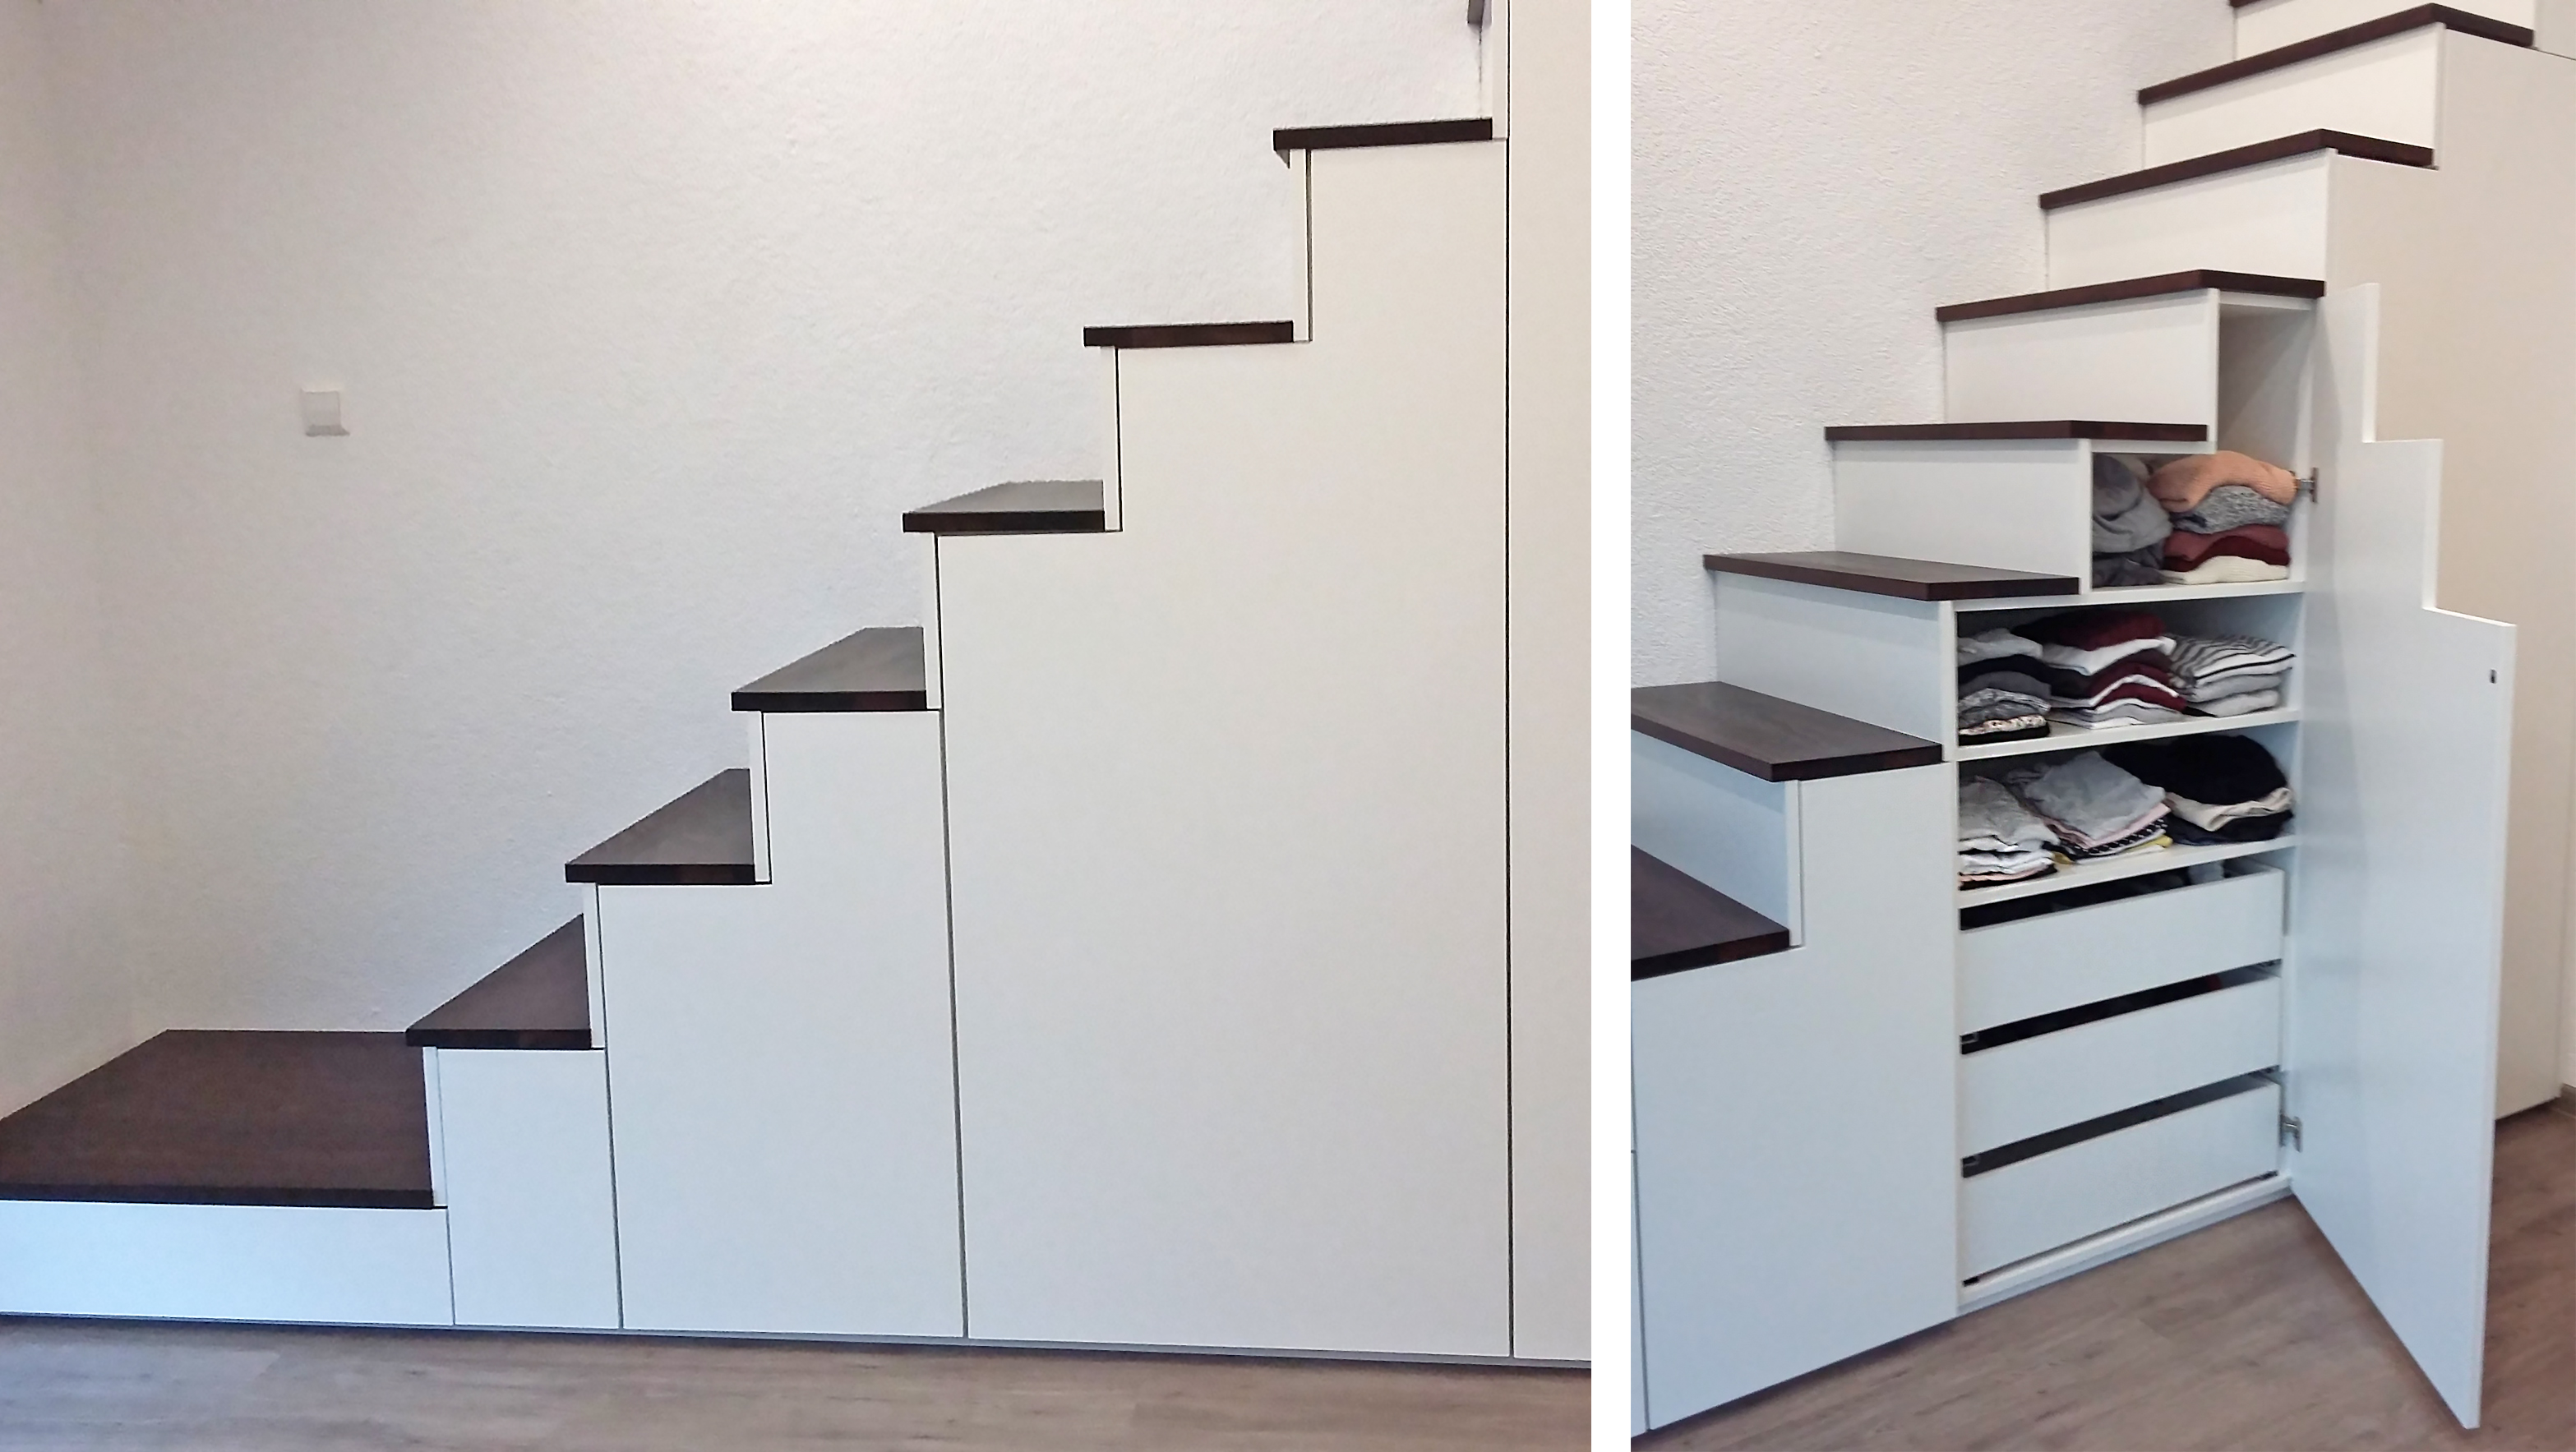 schrank unter treppe awesome schrank unter treppe architektur with schrank unter treppe free. Black Bedroom Furniture Sets. Home Design Ideas